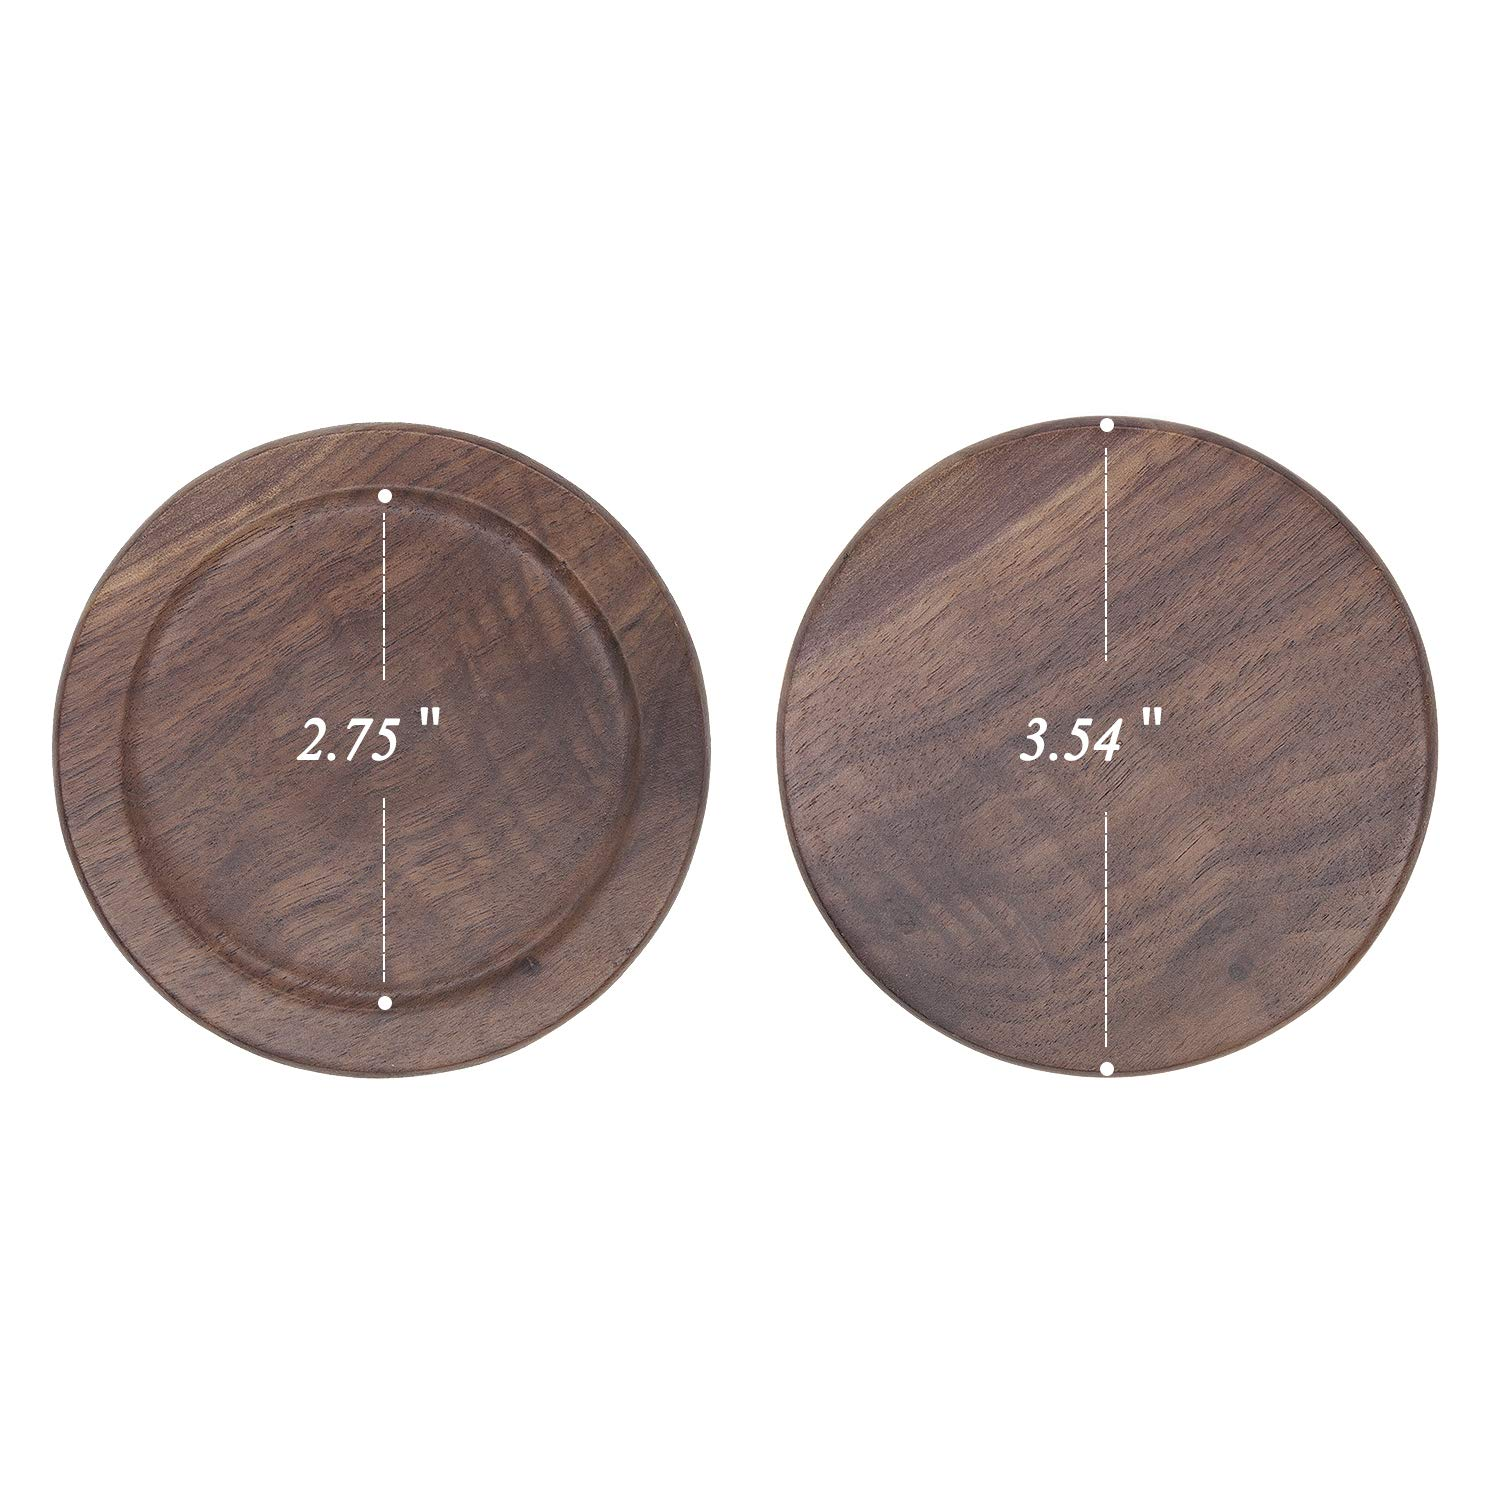 Black GOH DODD 8 Pieces Round Slate Stone Coasters 4 Inch Handmade Coasters for Bar and Home Drink Coasters with Holder